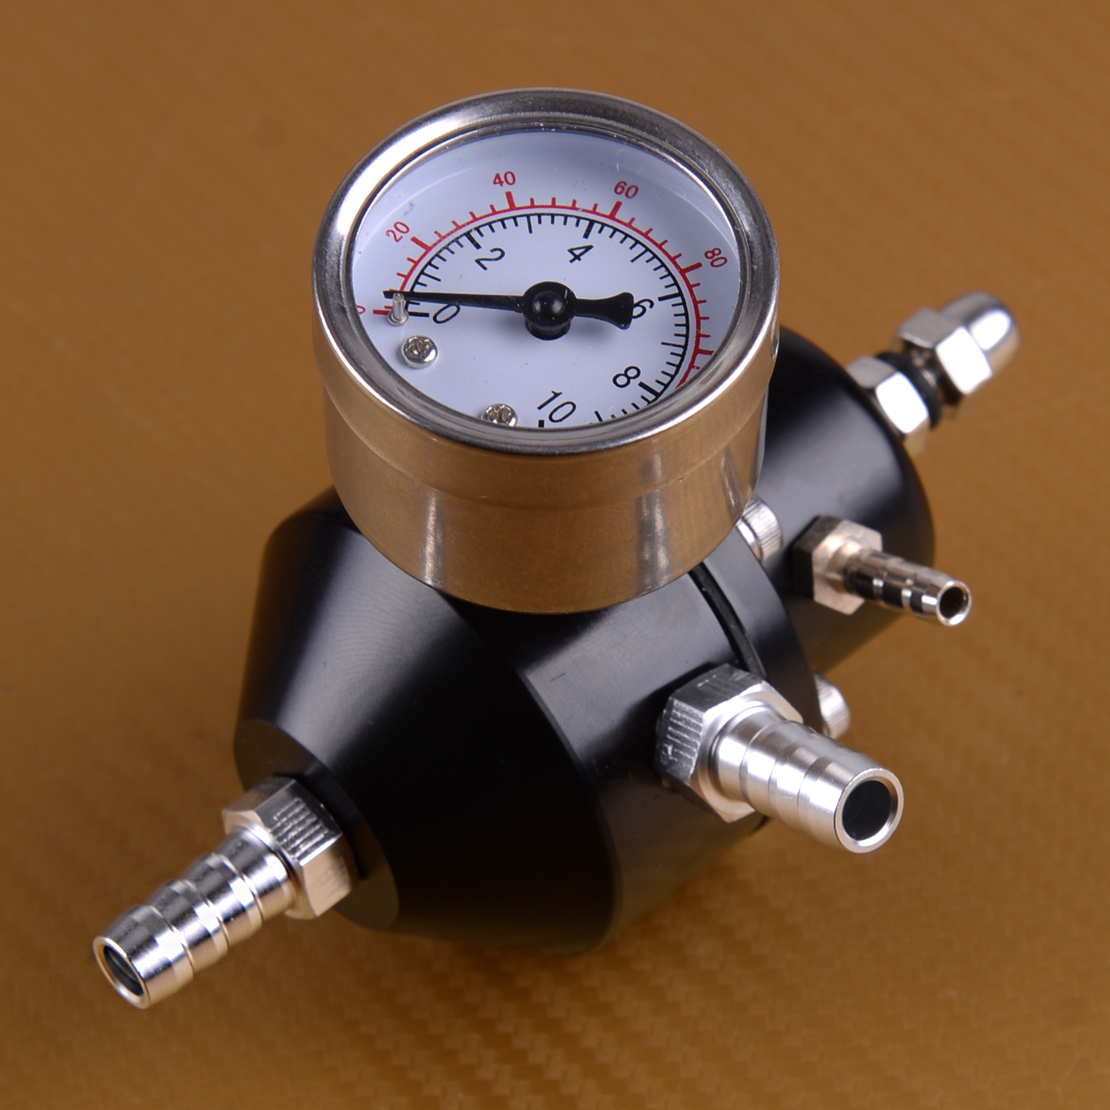 AN8 High Pressure Fuel Regulator Billet Aluminum Adjustable Fuel Pressure Regulator 30-75 PSI wiht Gauge Fuel Pressure Regulator